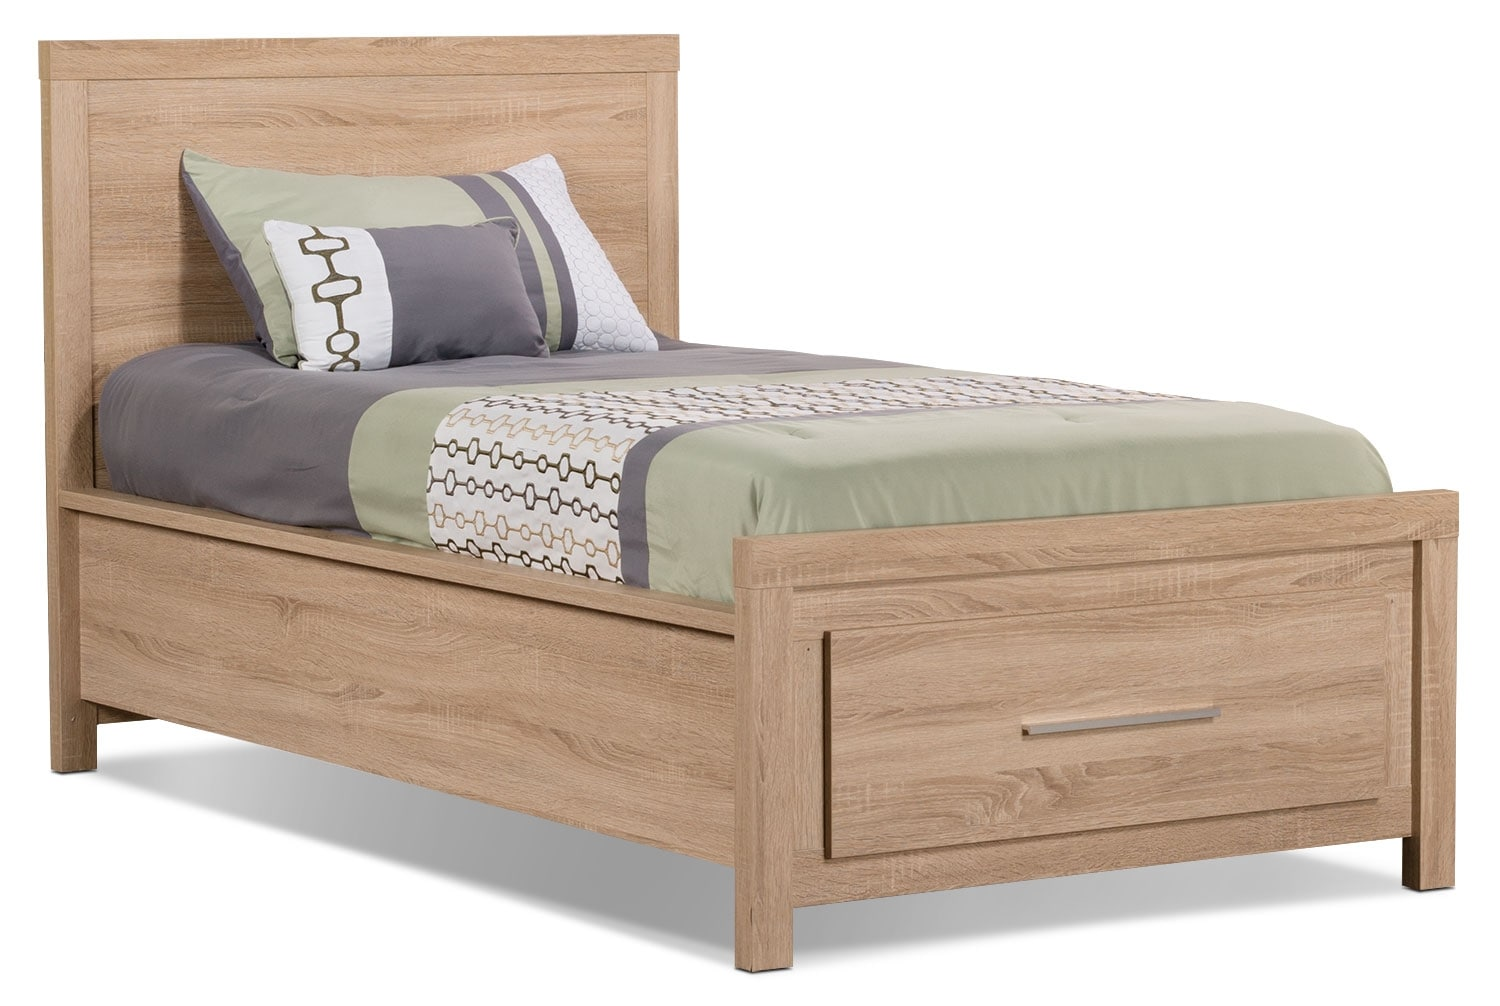 Kids Furniture - Sierra Twin Bed